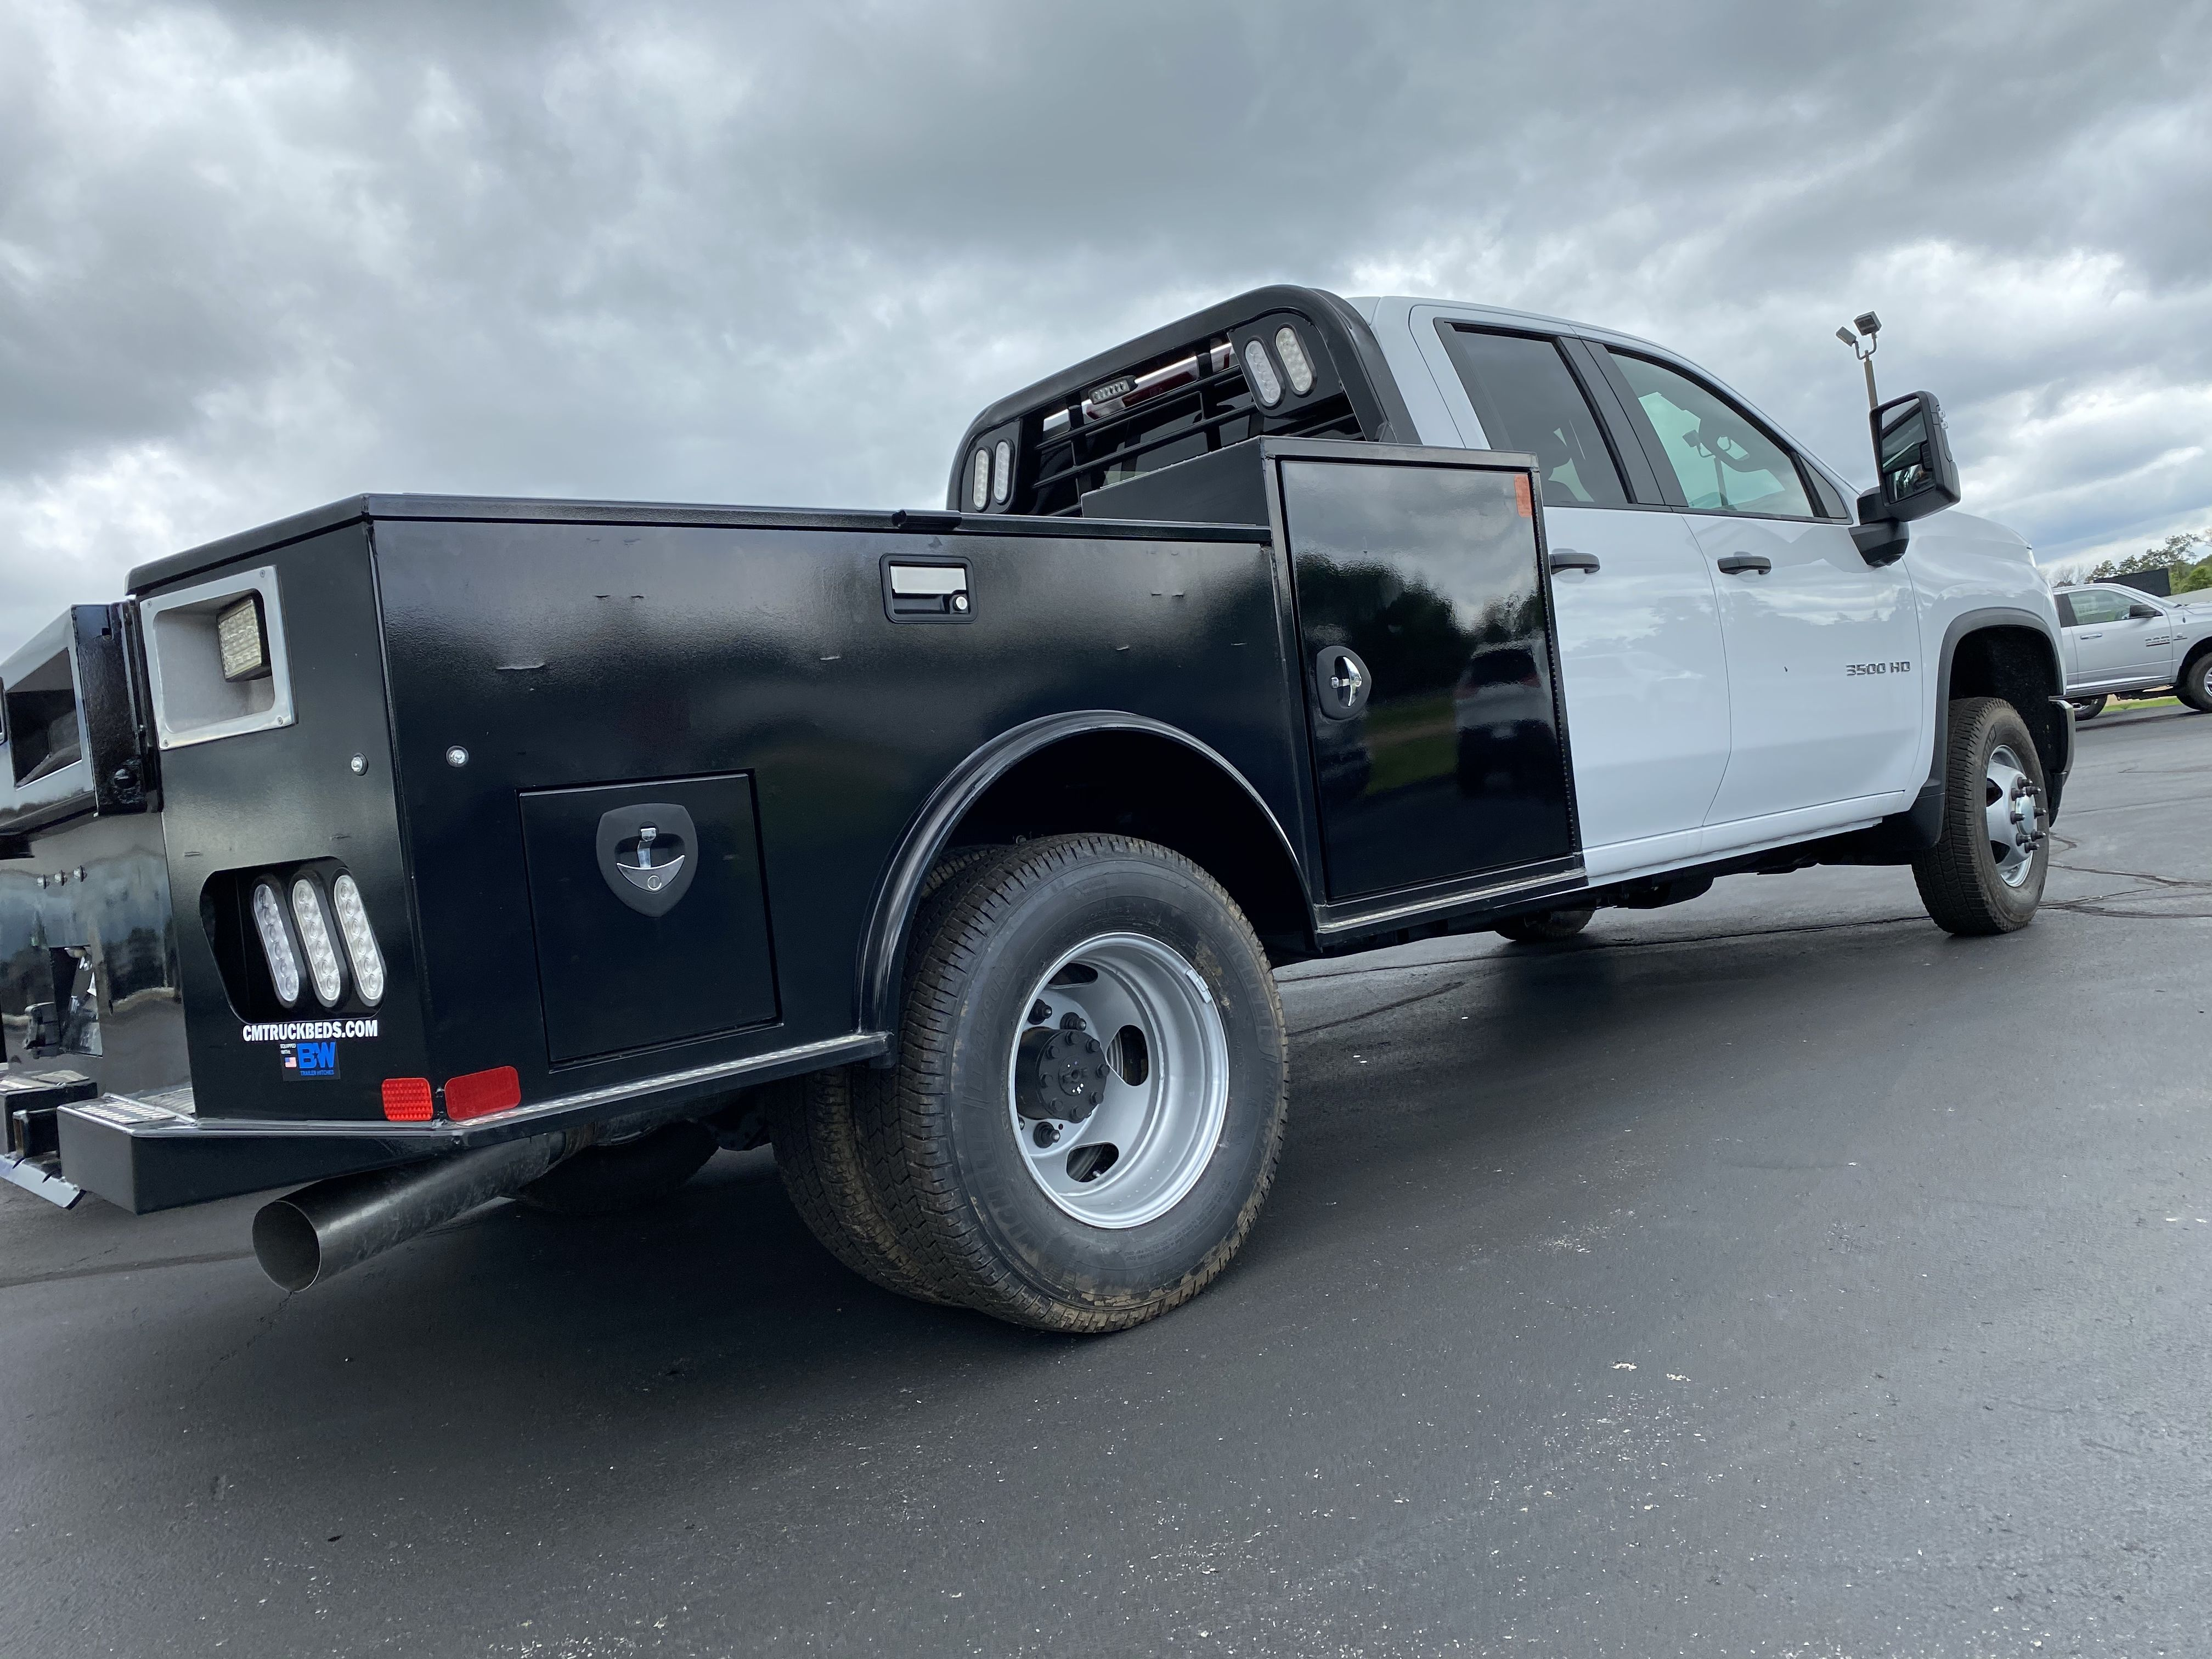 Pin on truck beds / flatbeds /service bodies /dumpbeds